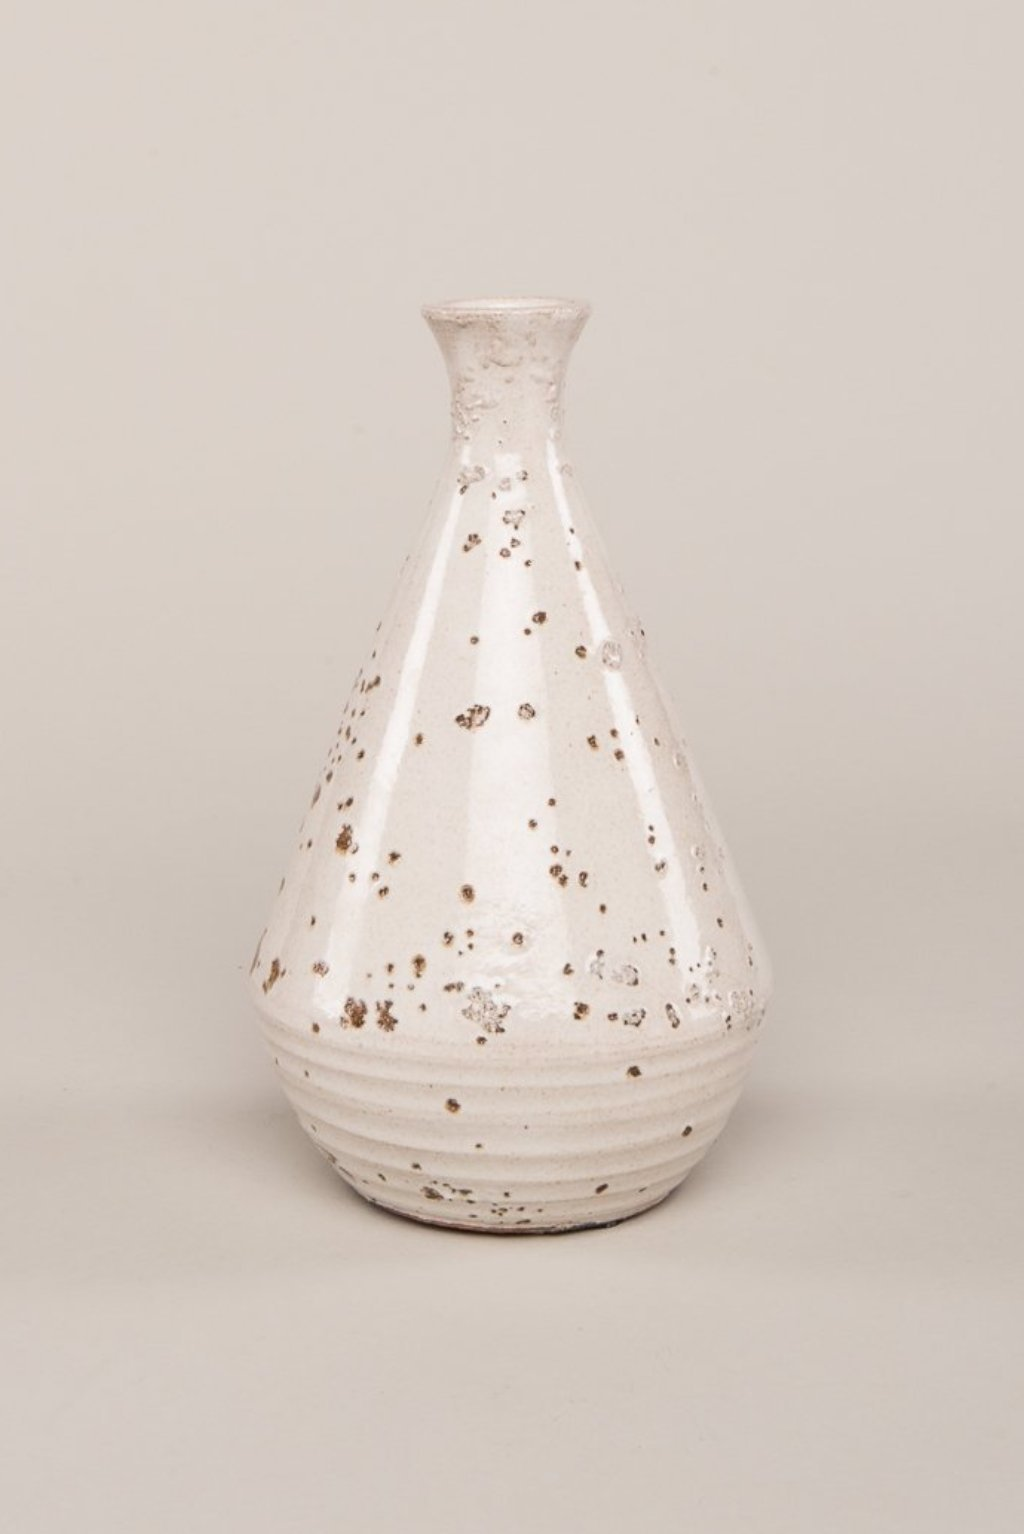 IAN SNOW HAND-TURNED EARTHENWARE VASE